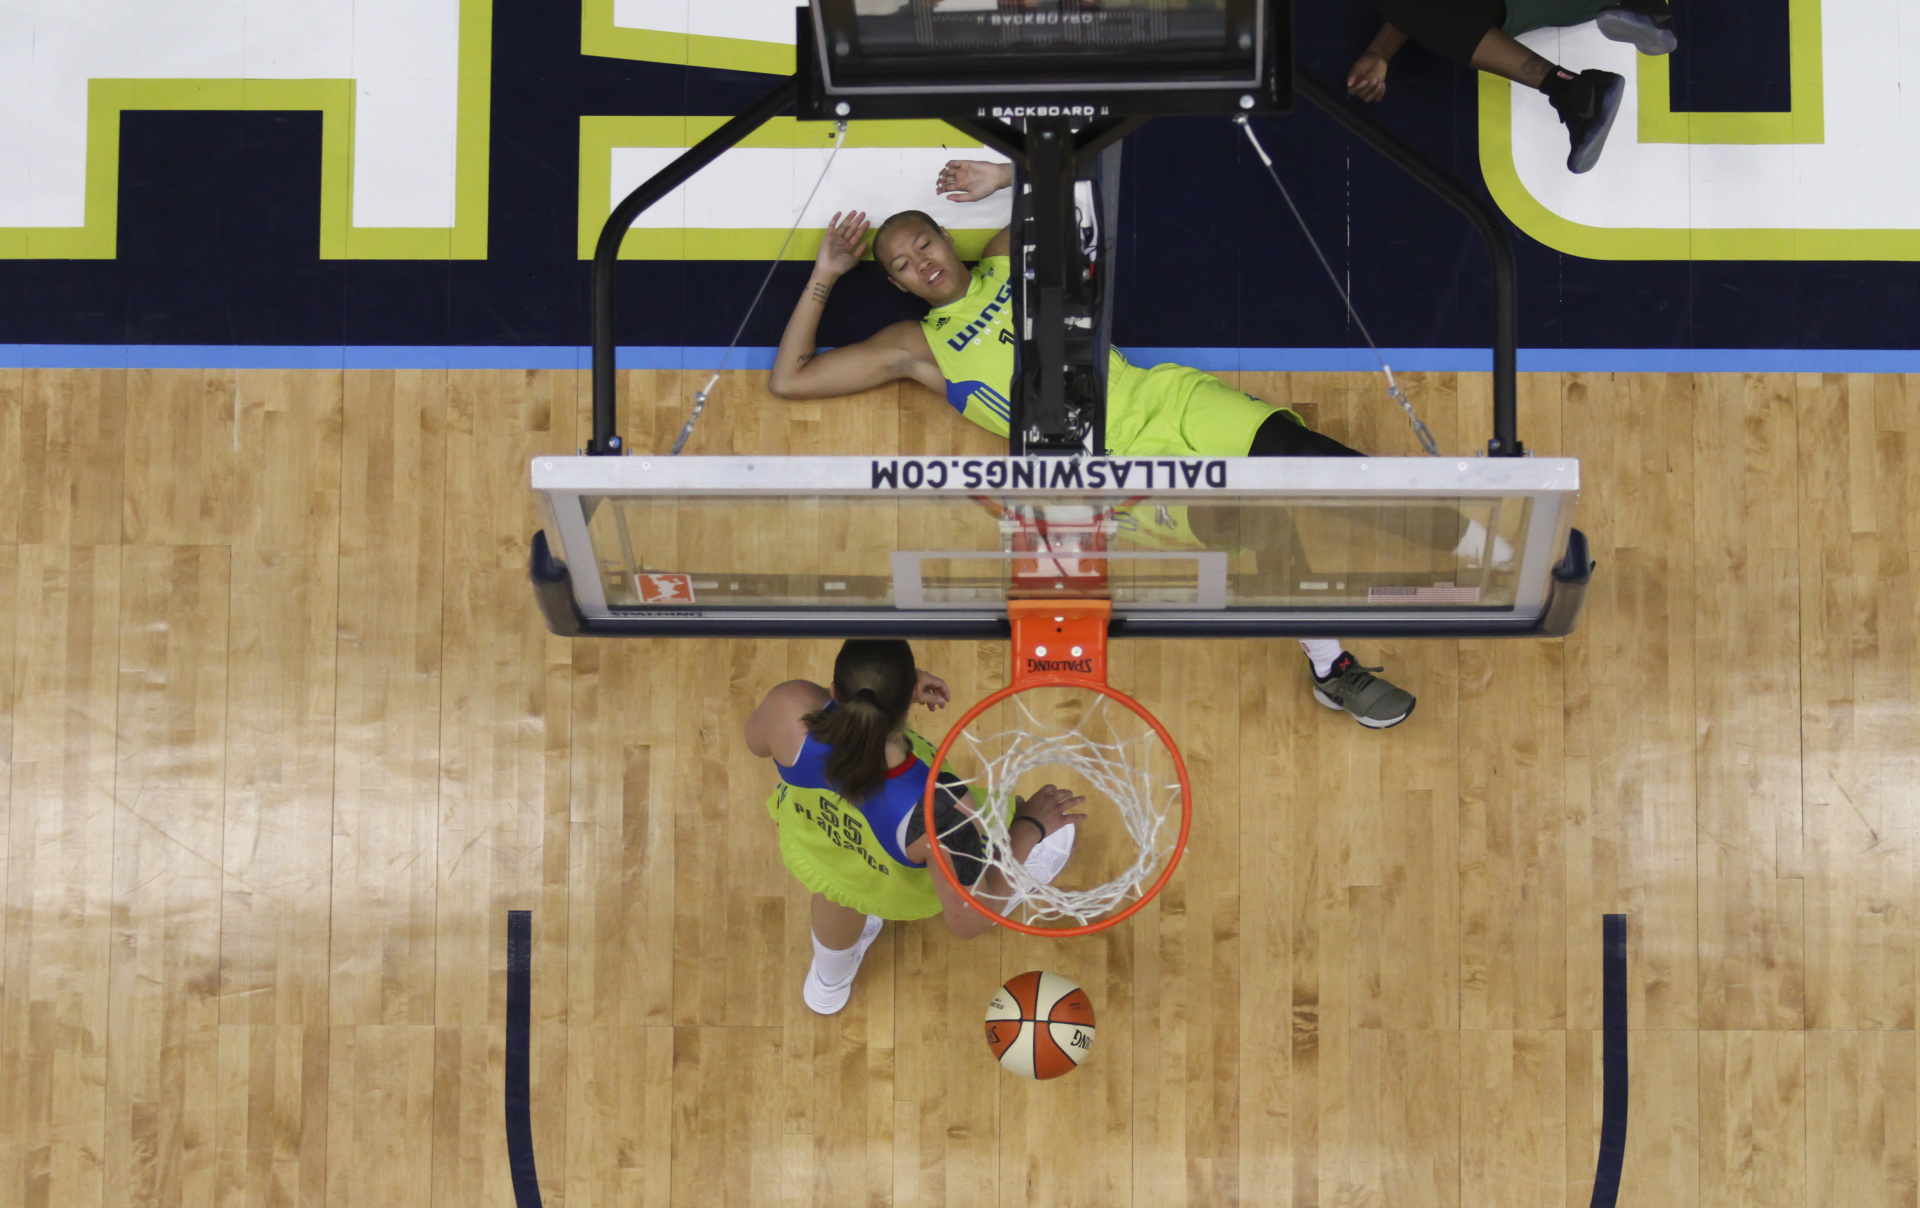 August 4, 2017 - Arlington, TX - The Dallas Wings' Theresa Plaisance goes to help up a fallen teammate in the game between the Dallas Wings and Seattle Storm. (Anthony Mazur/AM News Net)